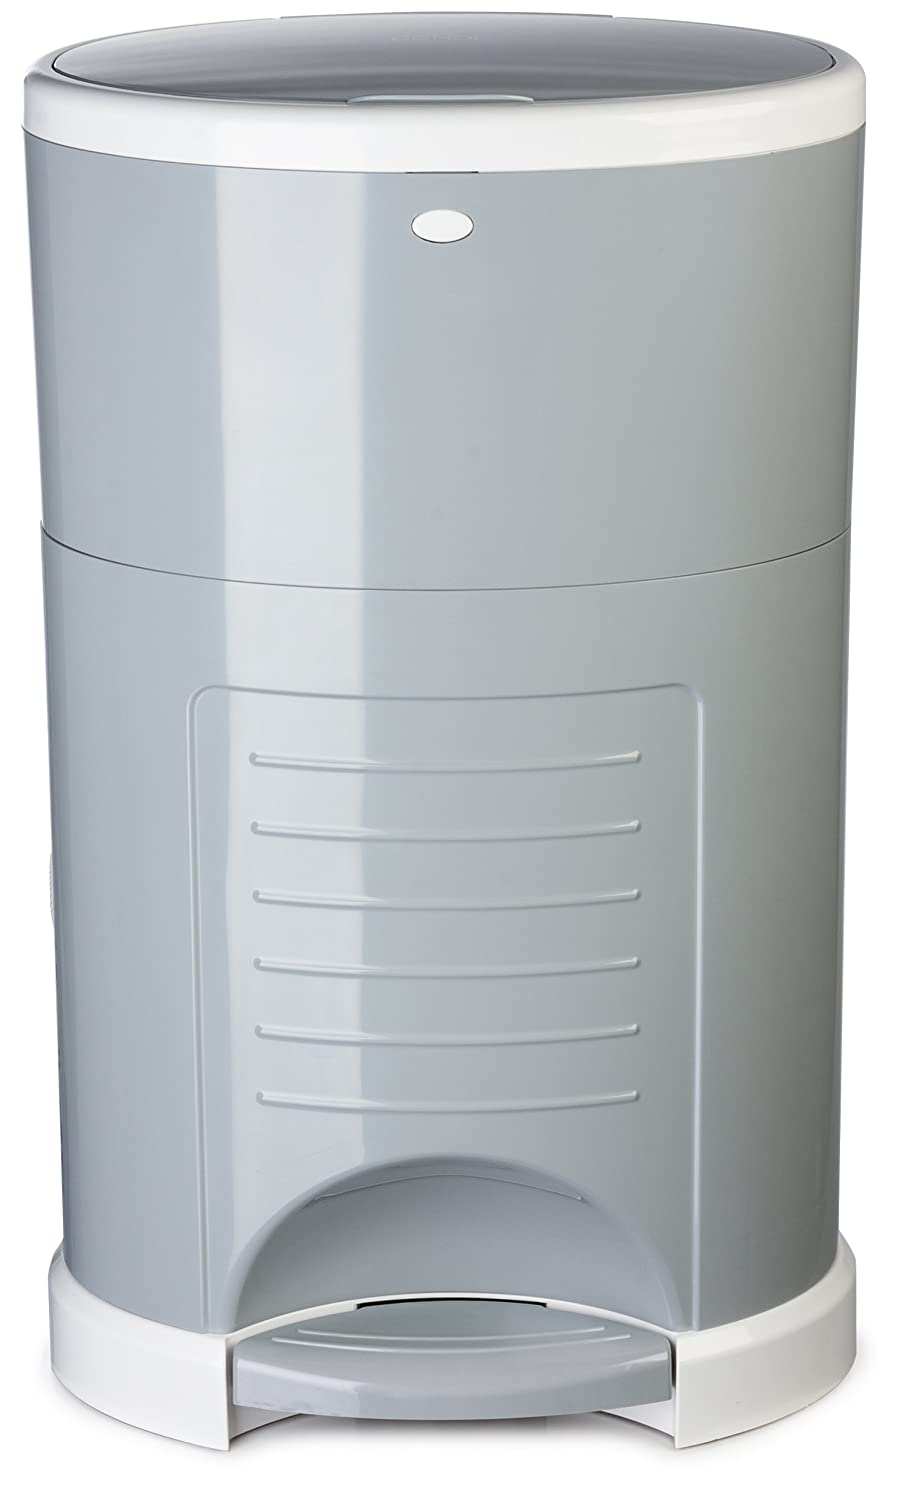 Dekor Plus Hands-Free Diaper Pail | Easiest to Use | Just Step. Drop. Done! | Pail Won't Absorb Odors/Rust | 20 Second Bag Change | Most Economical Refill System | Great for Cloth Diapers | Gray Diaper Dekor 2-12026-1